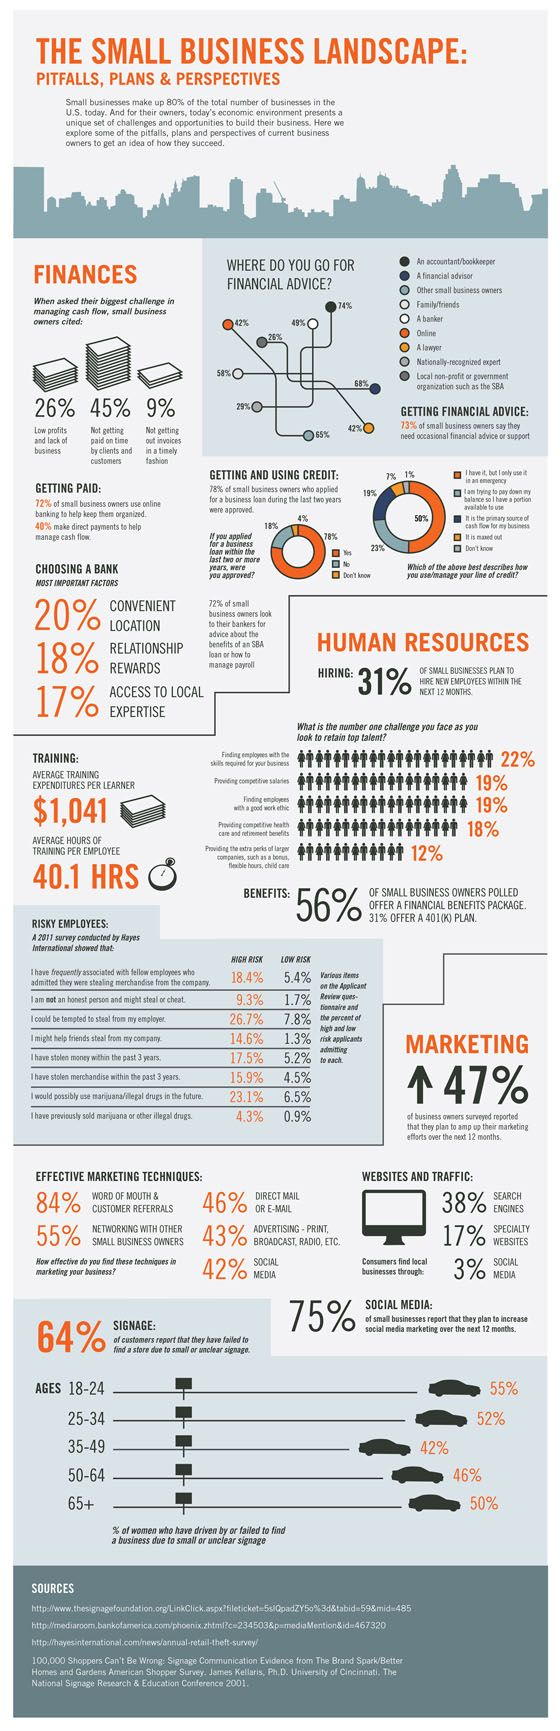 Great infographic on the small business landscape from Signs.com